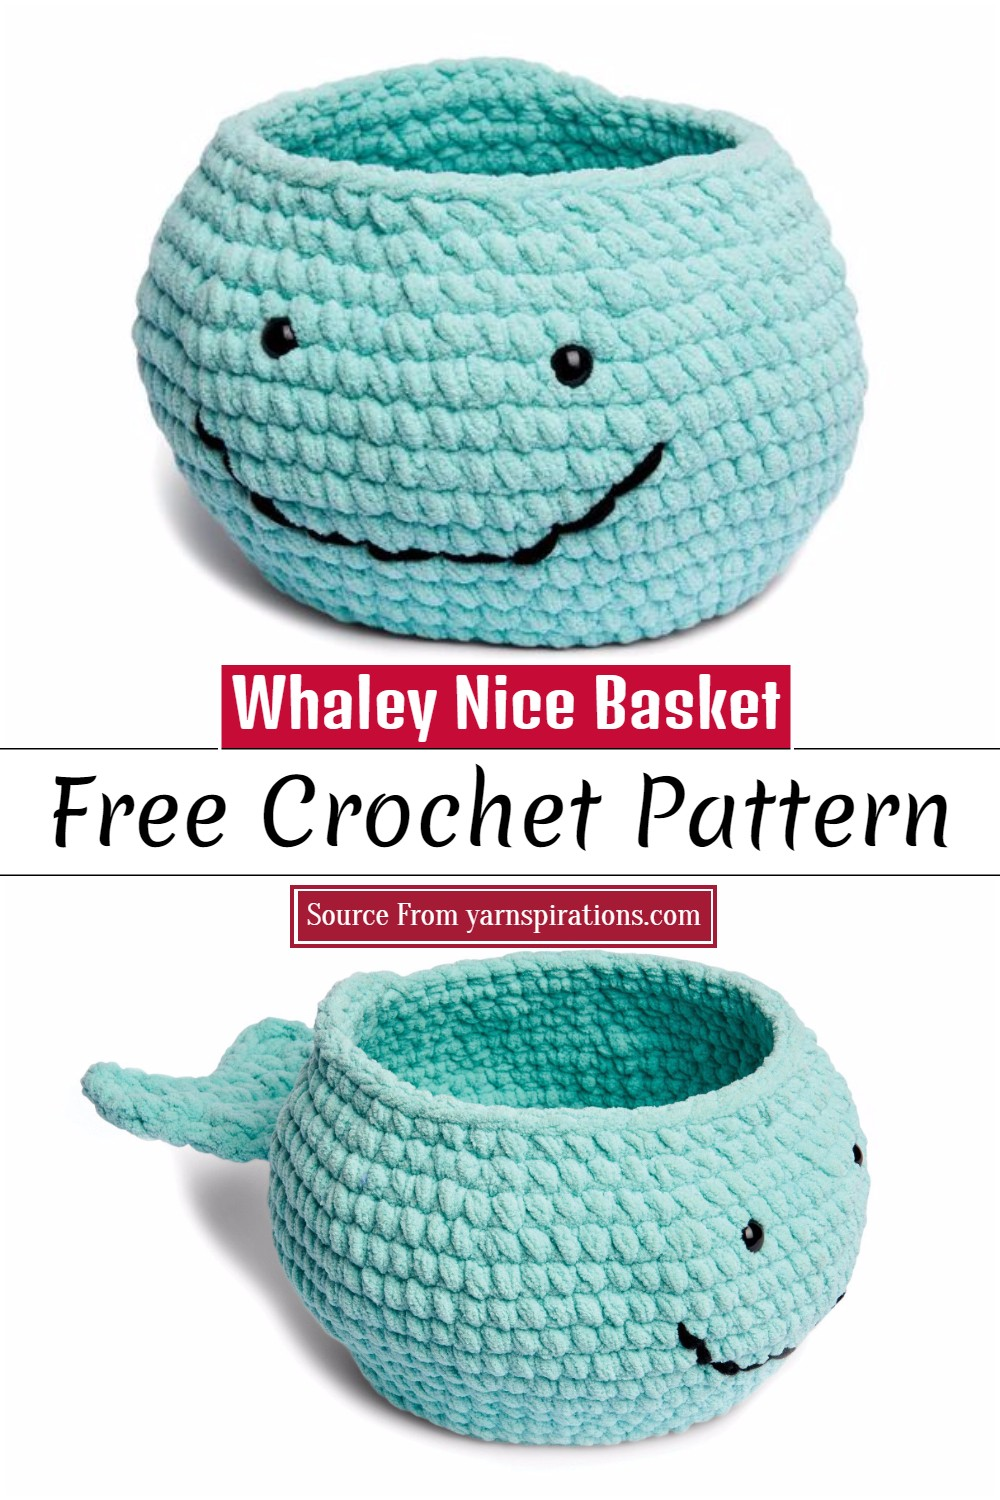 Crochet Whaley Nice Basket Pattern